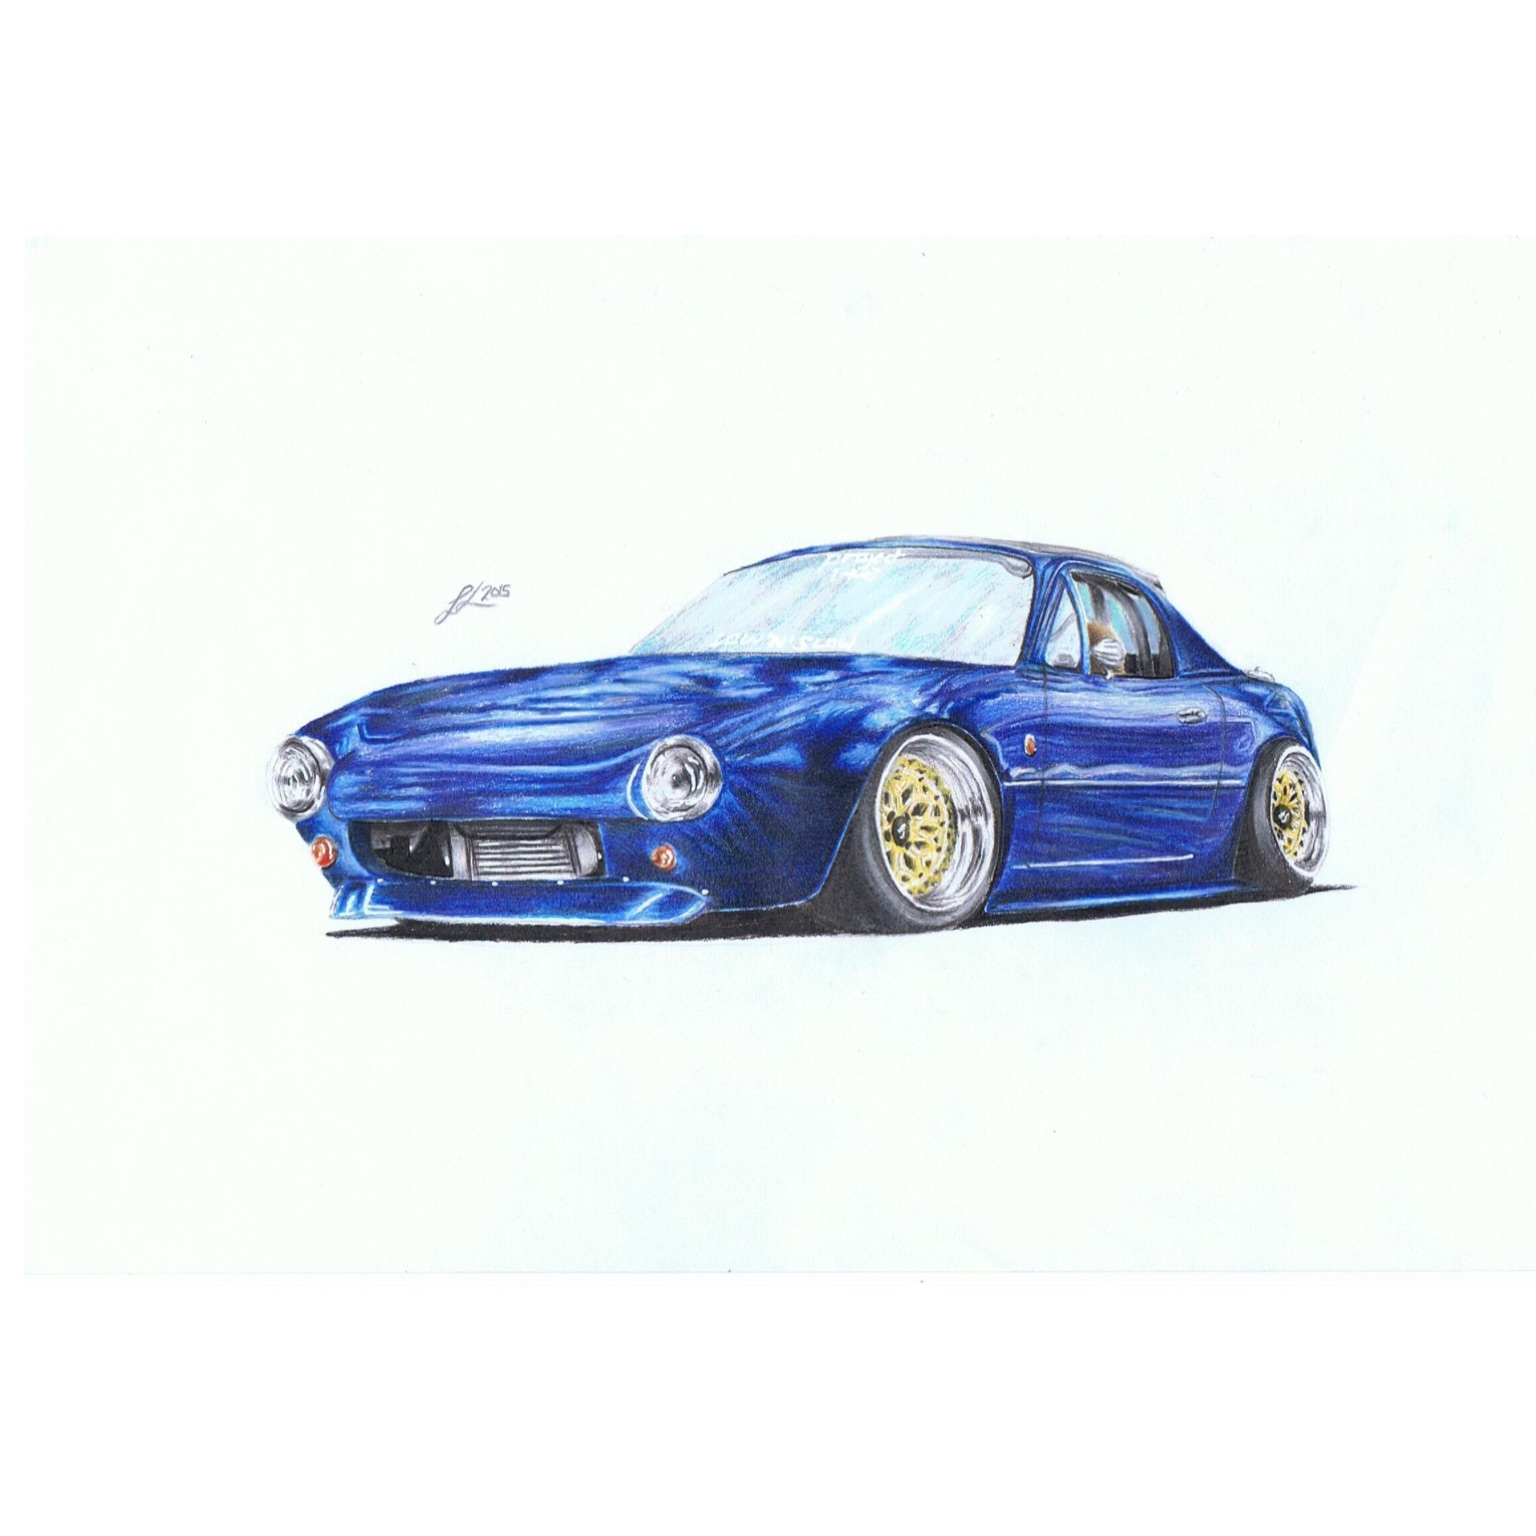 Ultimate Dream Car Stanced Out Miata With Pit Crew Racing Front Bumper Drawing Also On My Instagram Jtlb